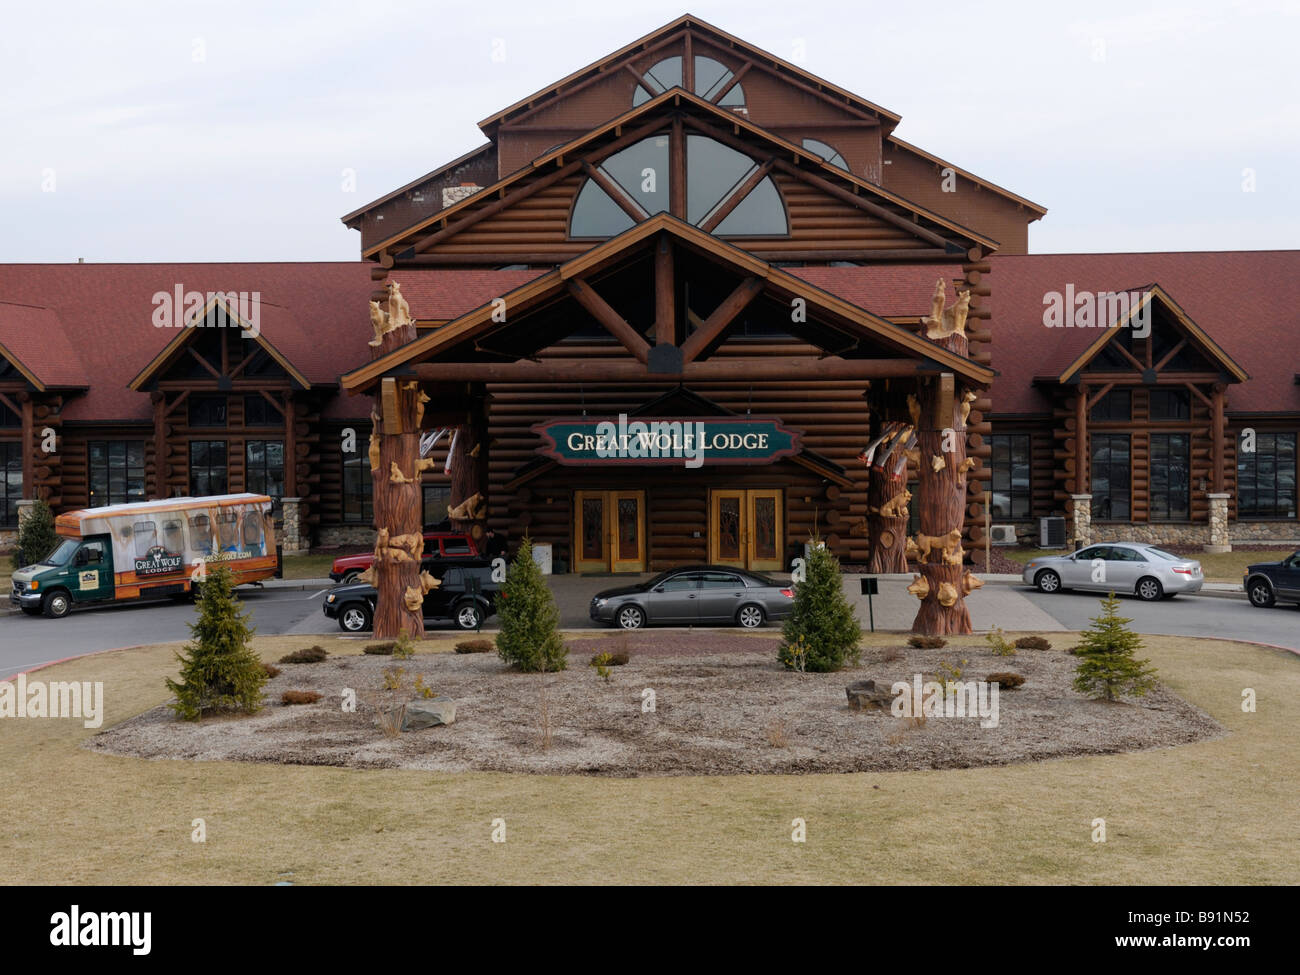 Lodge Stock Photos & Lodge Stock Images - Alamy